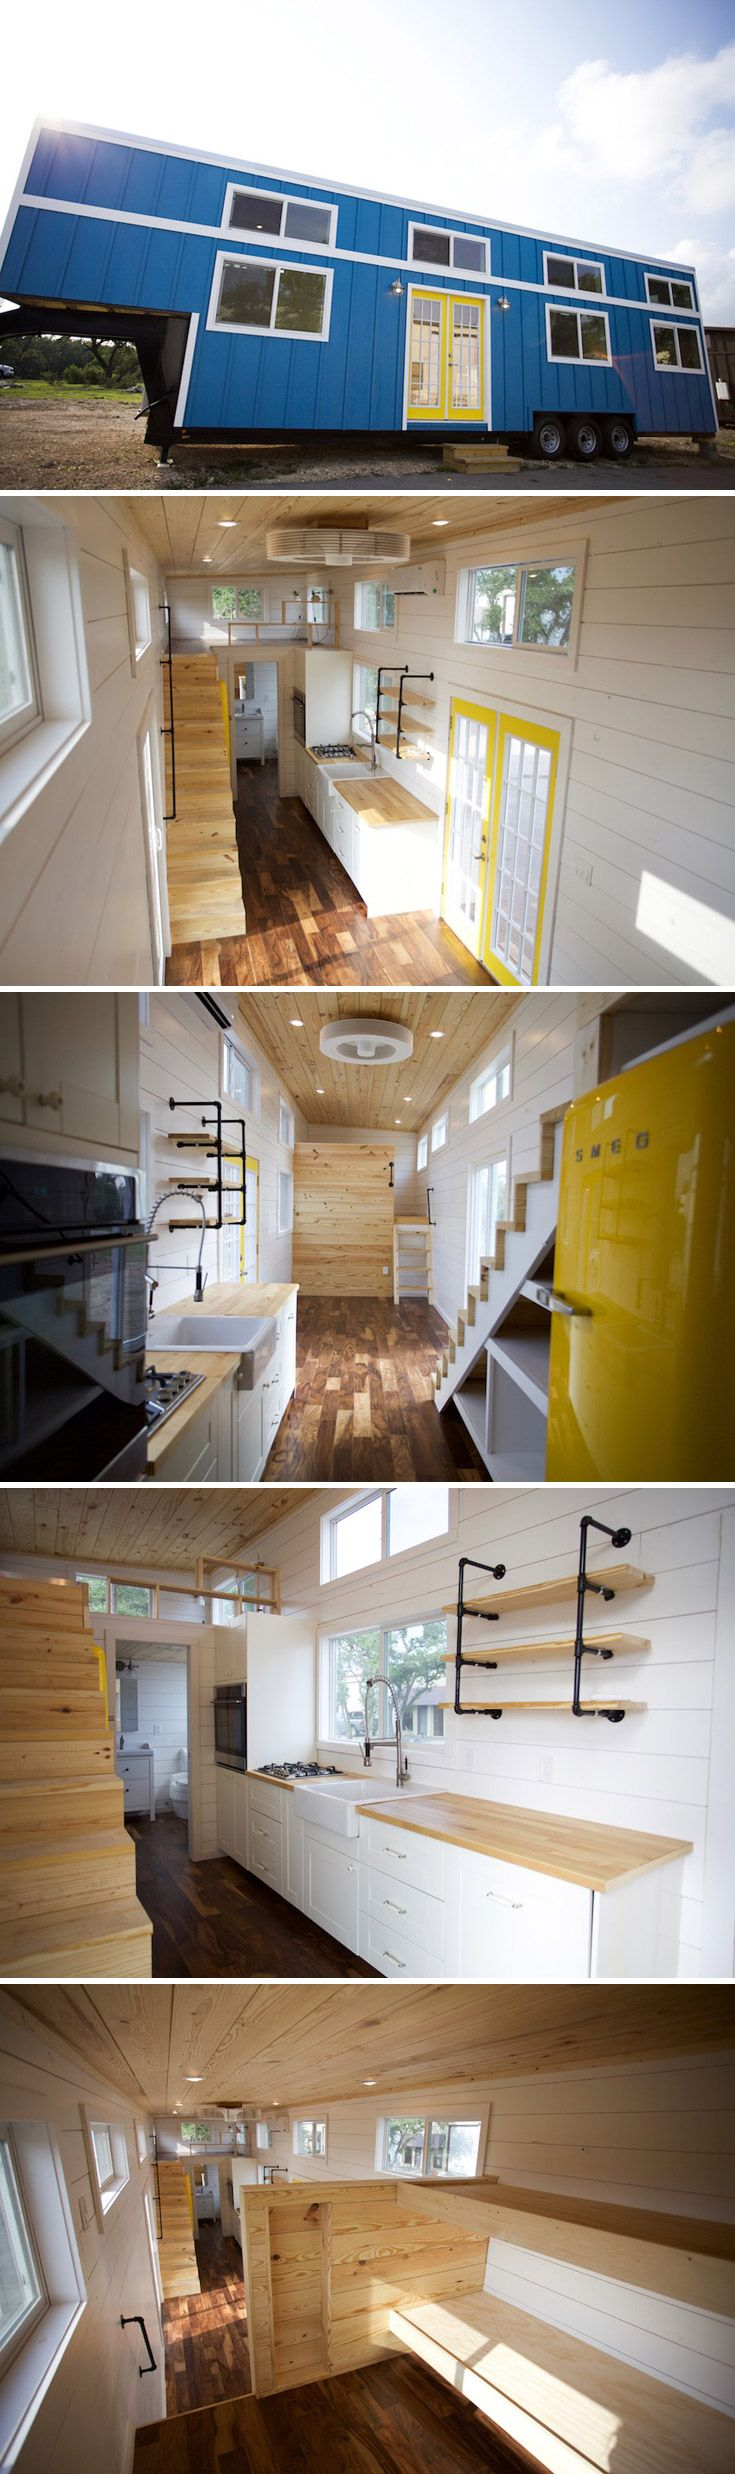 This gooseneck tiny house was built for a couple and their three kids. The 35' gooseneck trailer has a 7' deck over neck, totaling over 330 sq.ft. of space.